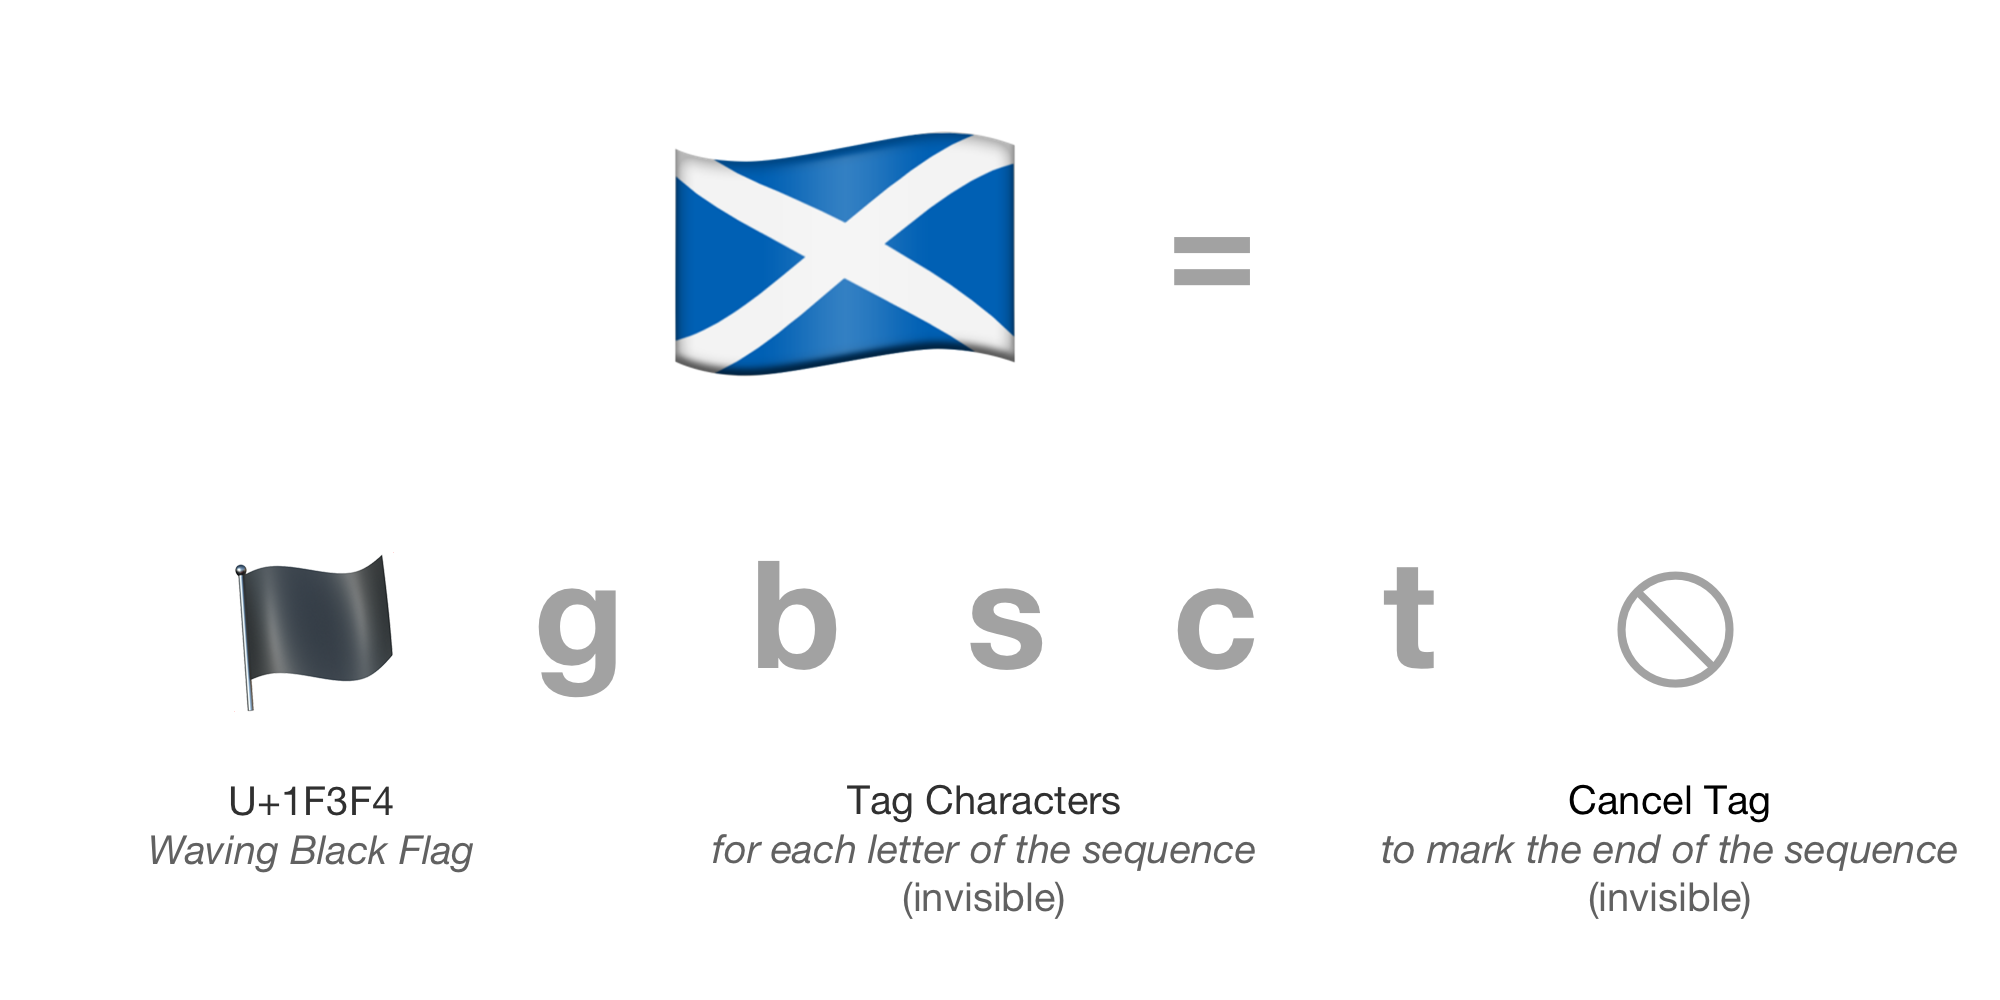 inside-scottish-flag-emoji-emojipedia